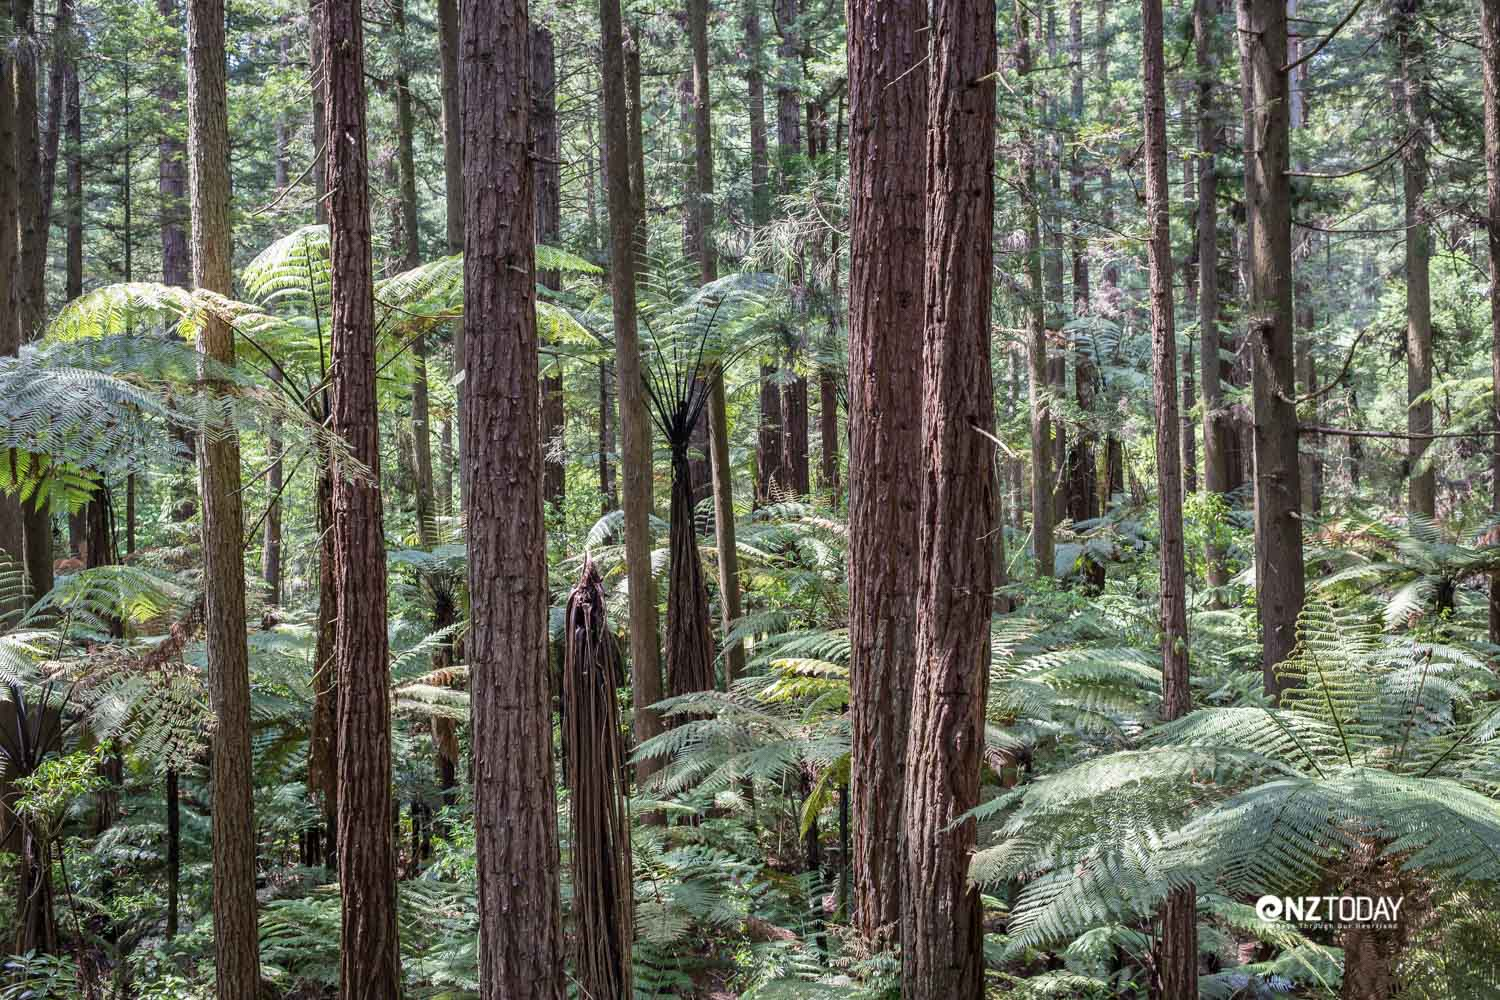 A bird's-eye view of the redwood forest from the Treewalk